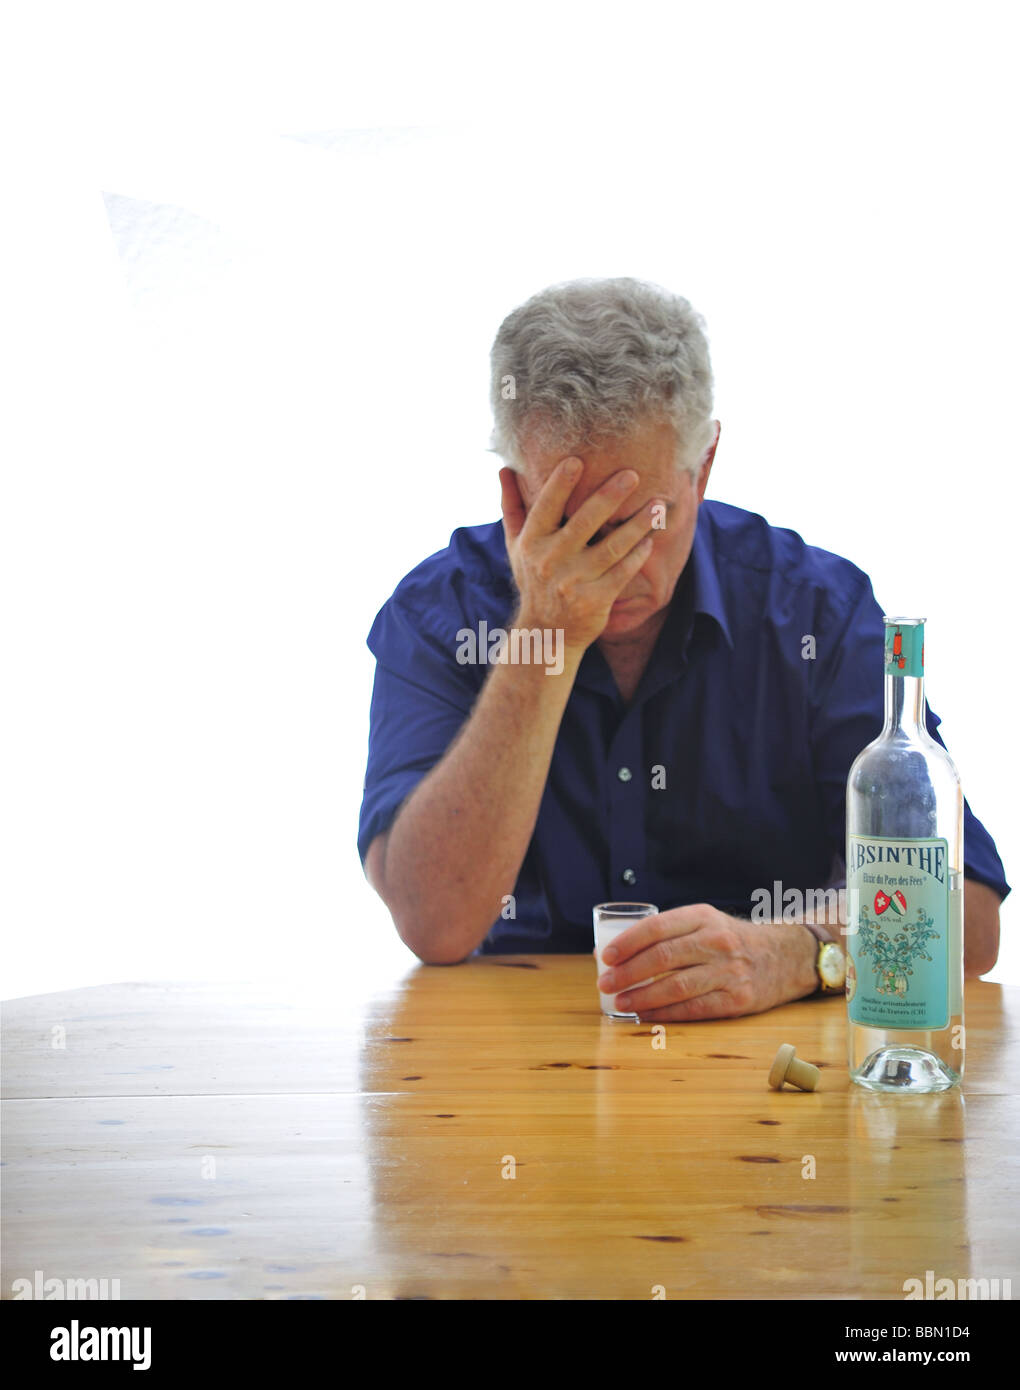 A figure out of focus sits at a table holding a glass of absinthe. Focus on the absinthe bottle. Isolated on white - Stock Image